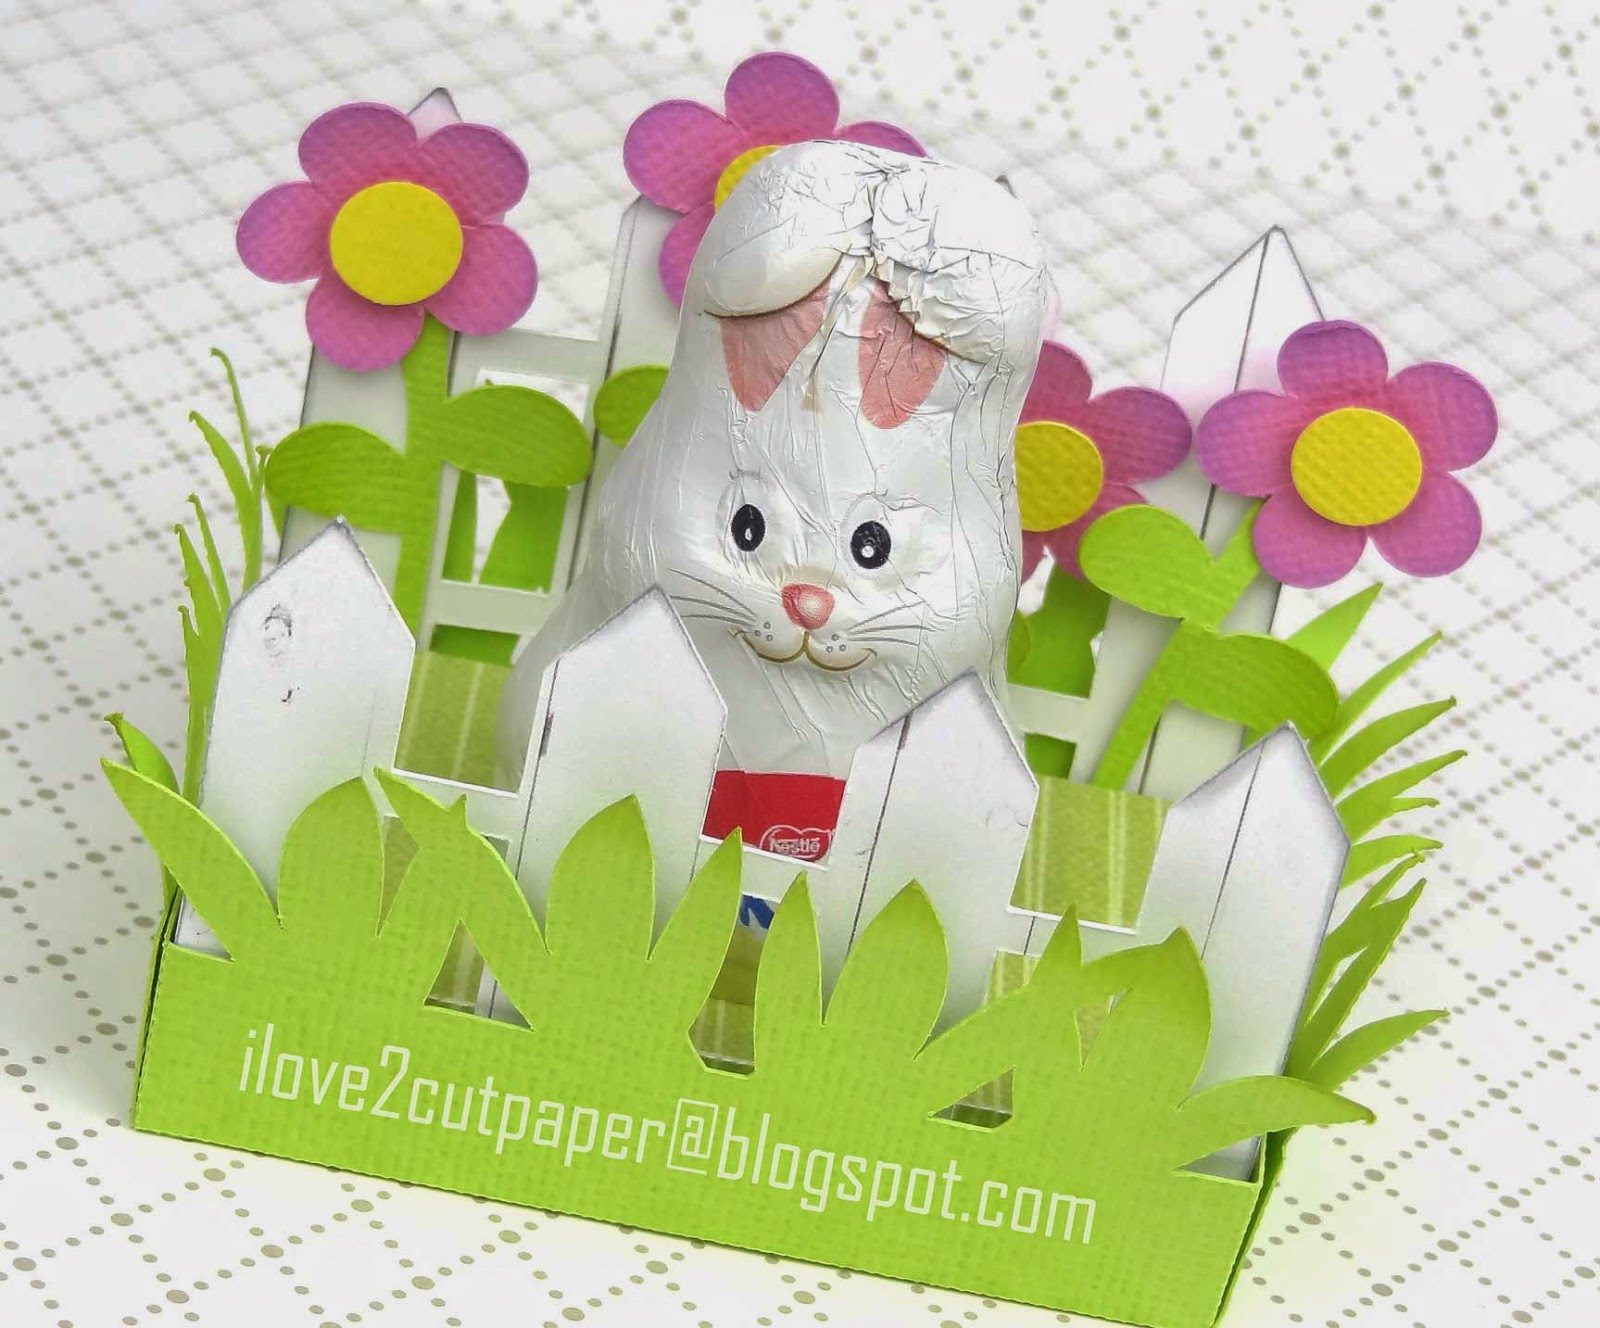 I love 2 cut paper easter bunny gift box easter bunny gift box negle Image collections